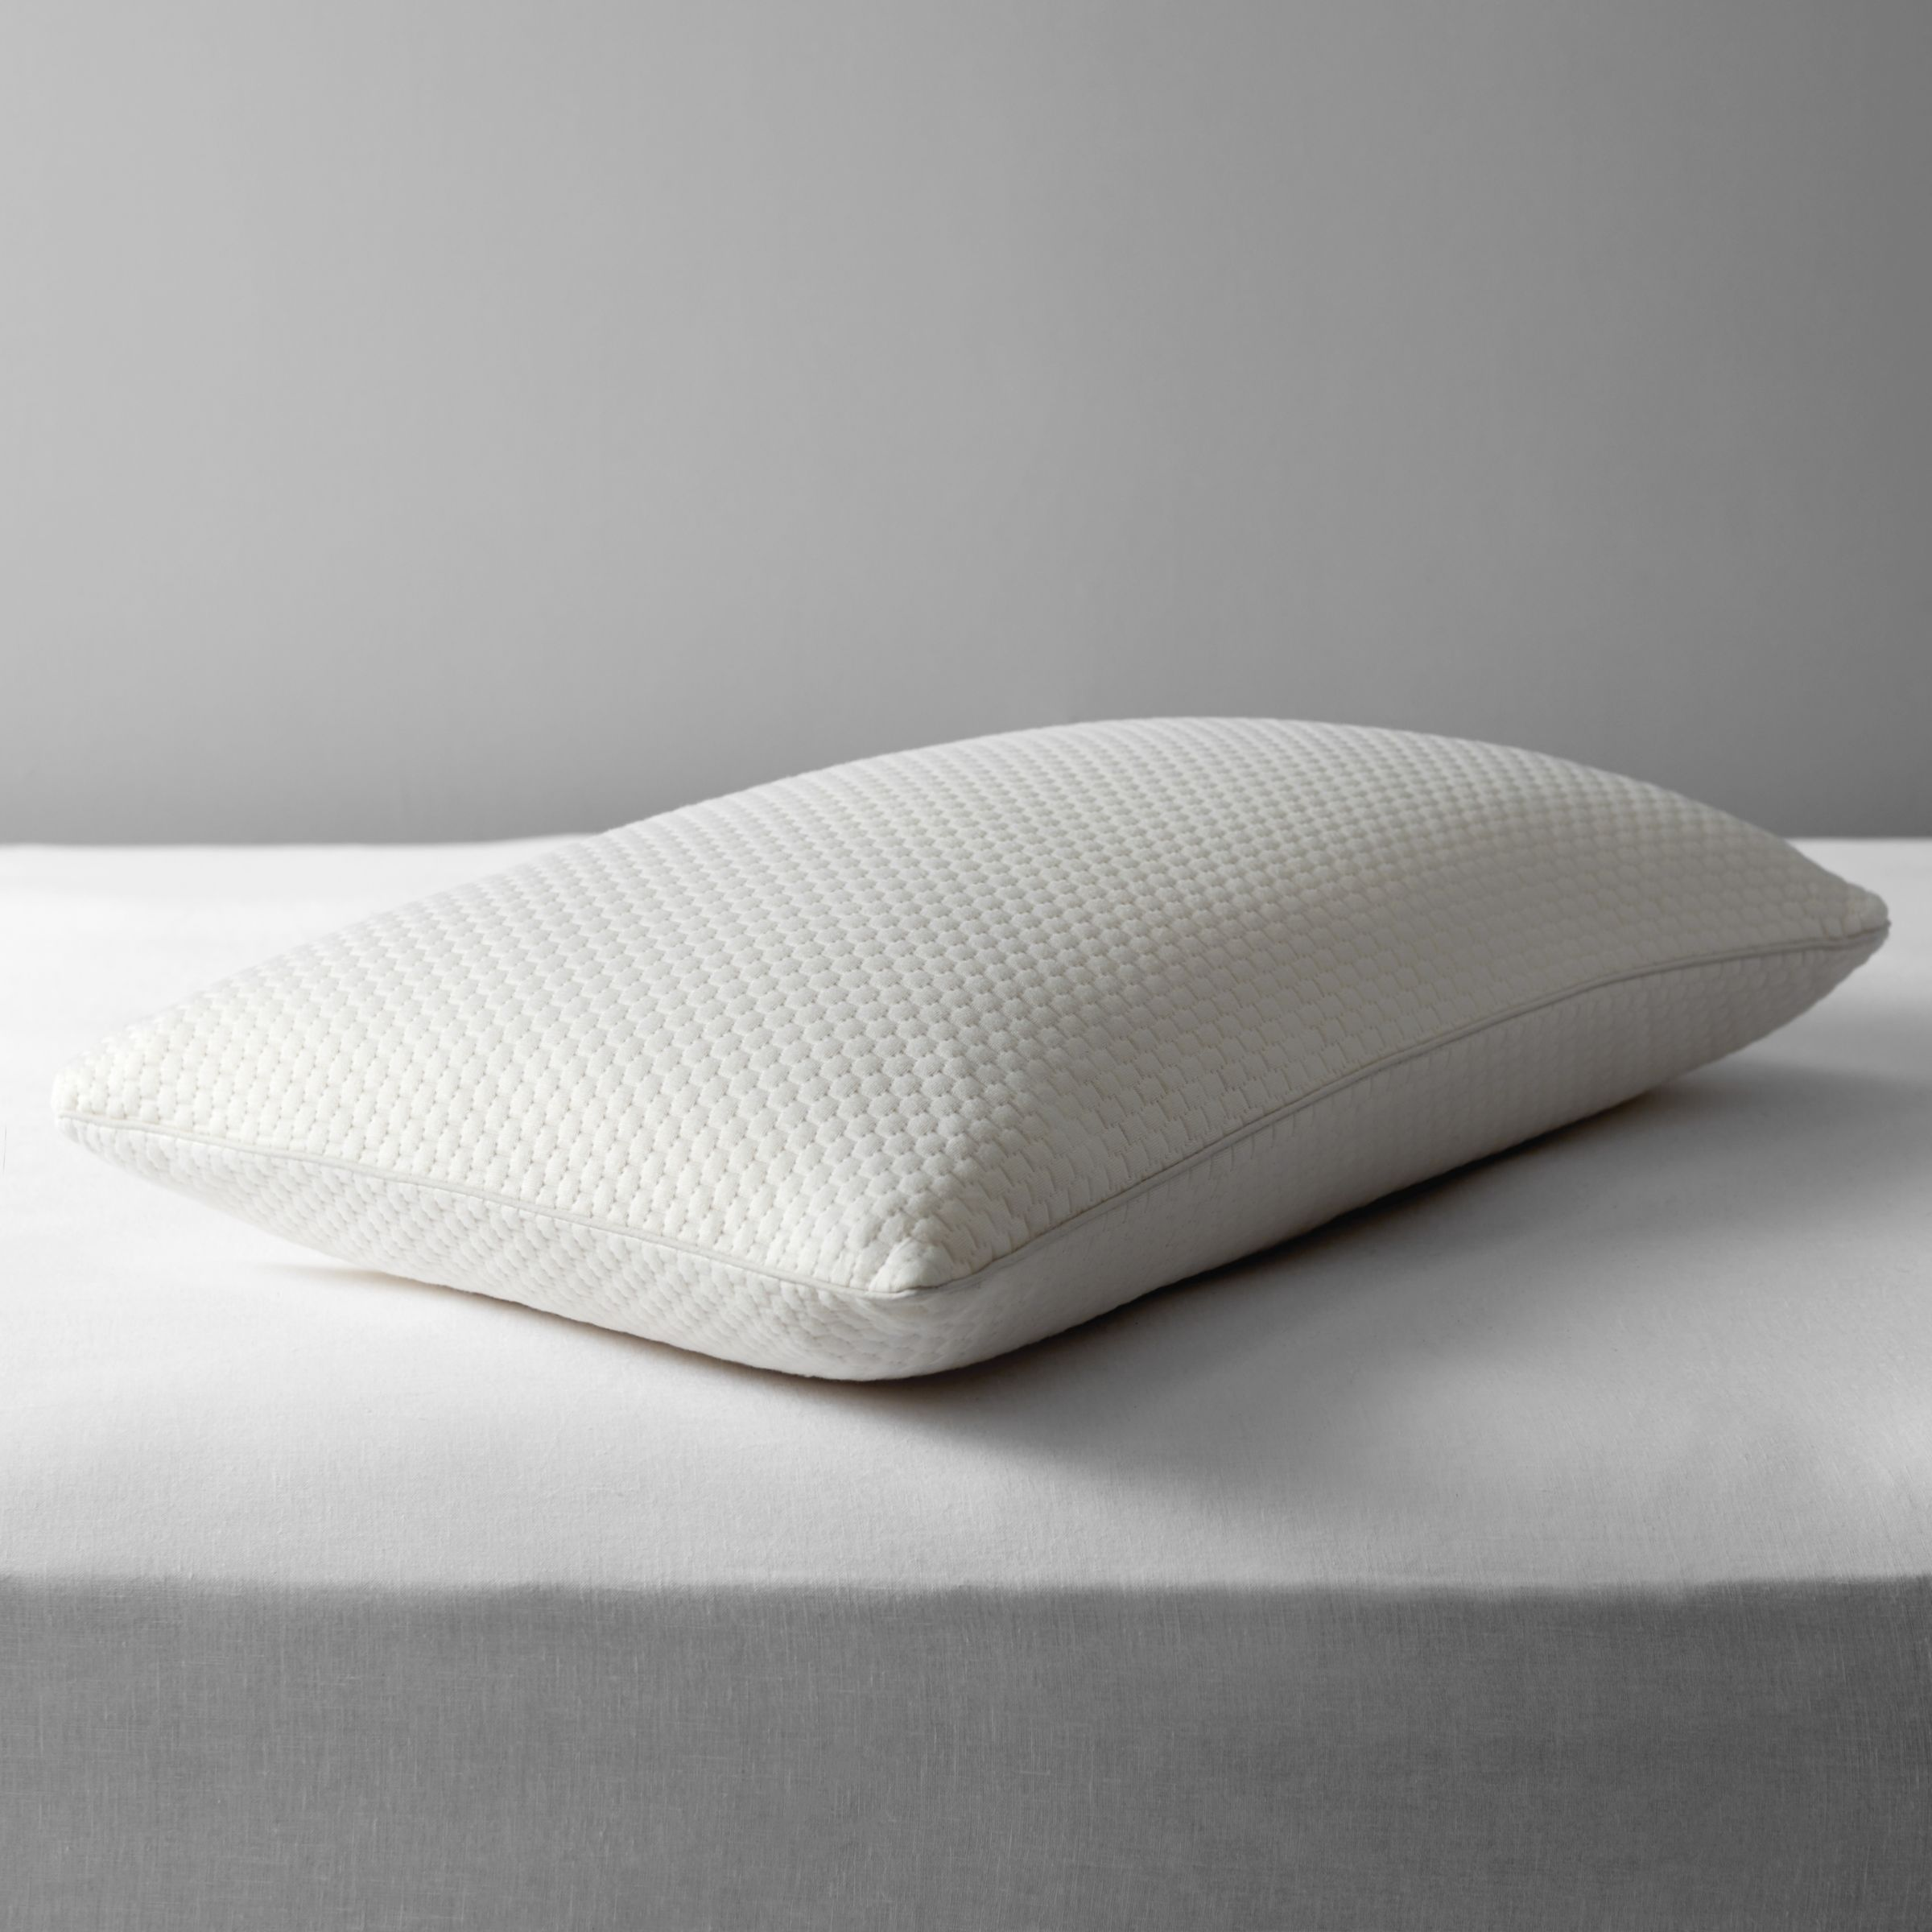 John Lewis & Partners Specialist Synthetic Cluster Memory Foam Standard Support Pillow, Firm